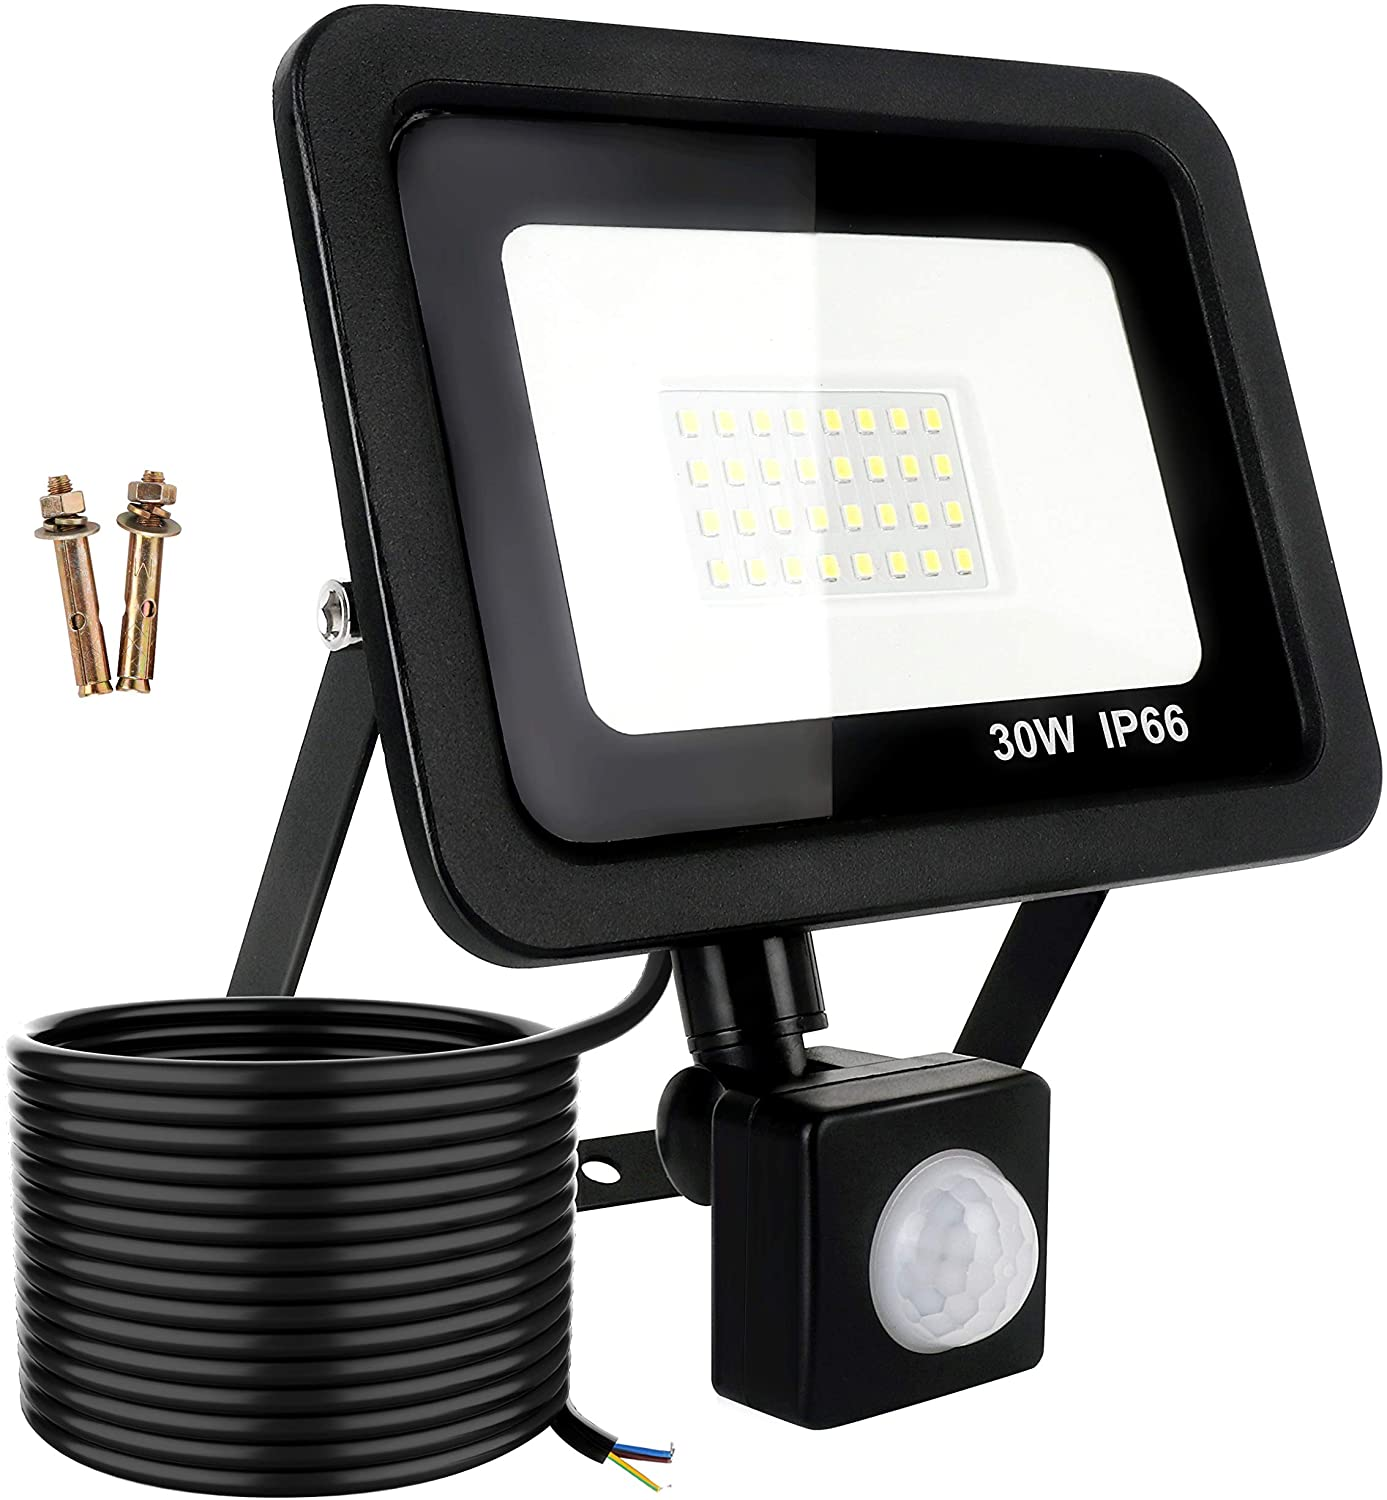 30W LED Floodlight with Motion Sensor, 2700LM Super Bright Security Light Outdoor, 1.5m Cable, Waterproof IP66, Daylight 6000K Spotlight for Garage, Garden, Yard and Sports Field (No Plug)